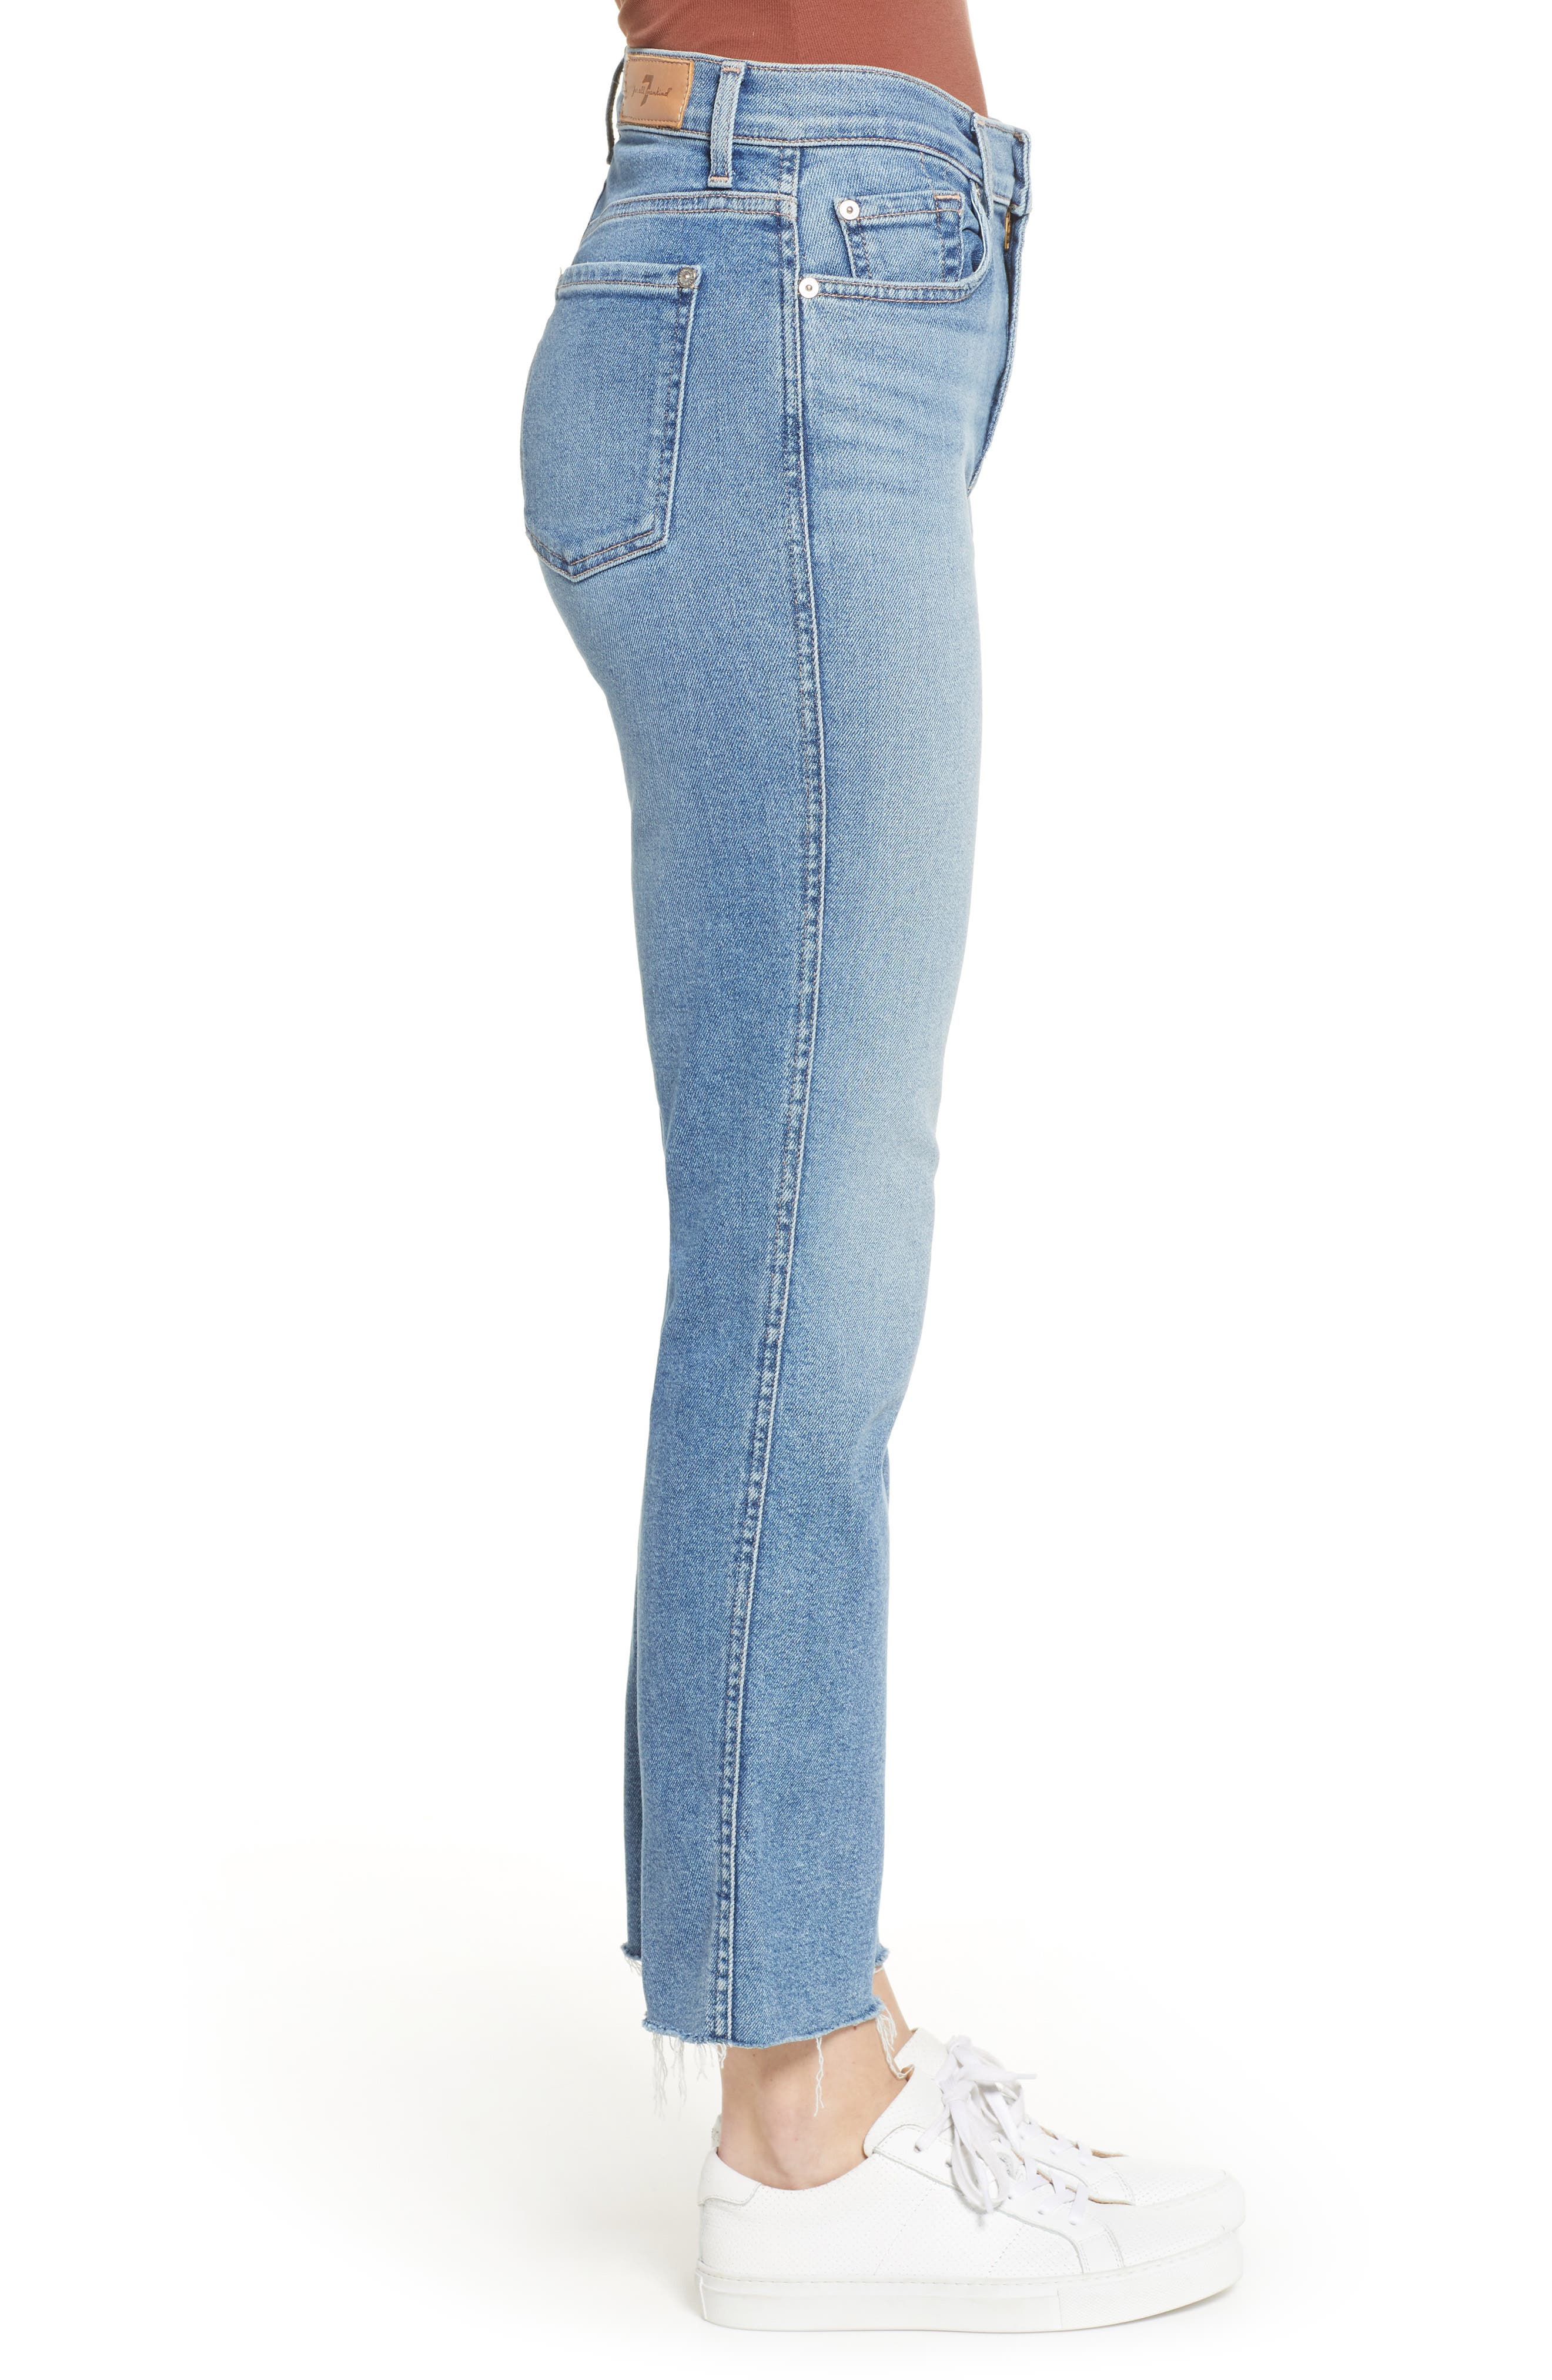 7 FOR ALL MANKIND<SUP>®</SUP>, Edie High Waist Crop Jeans, Alternate thumbnail 4, color, LUXE VINTAGE FLORA